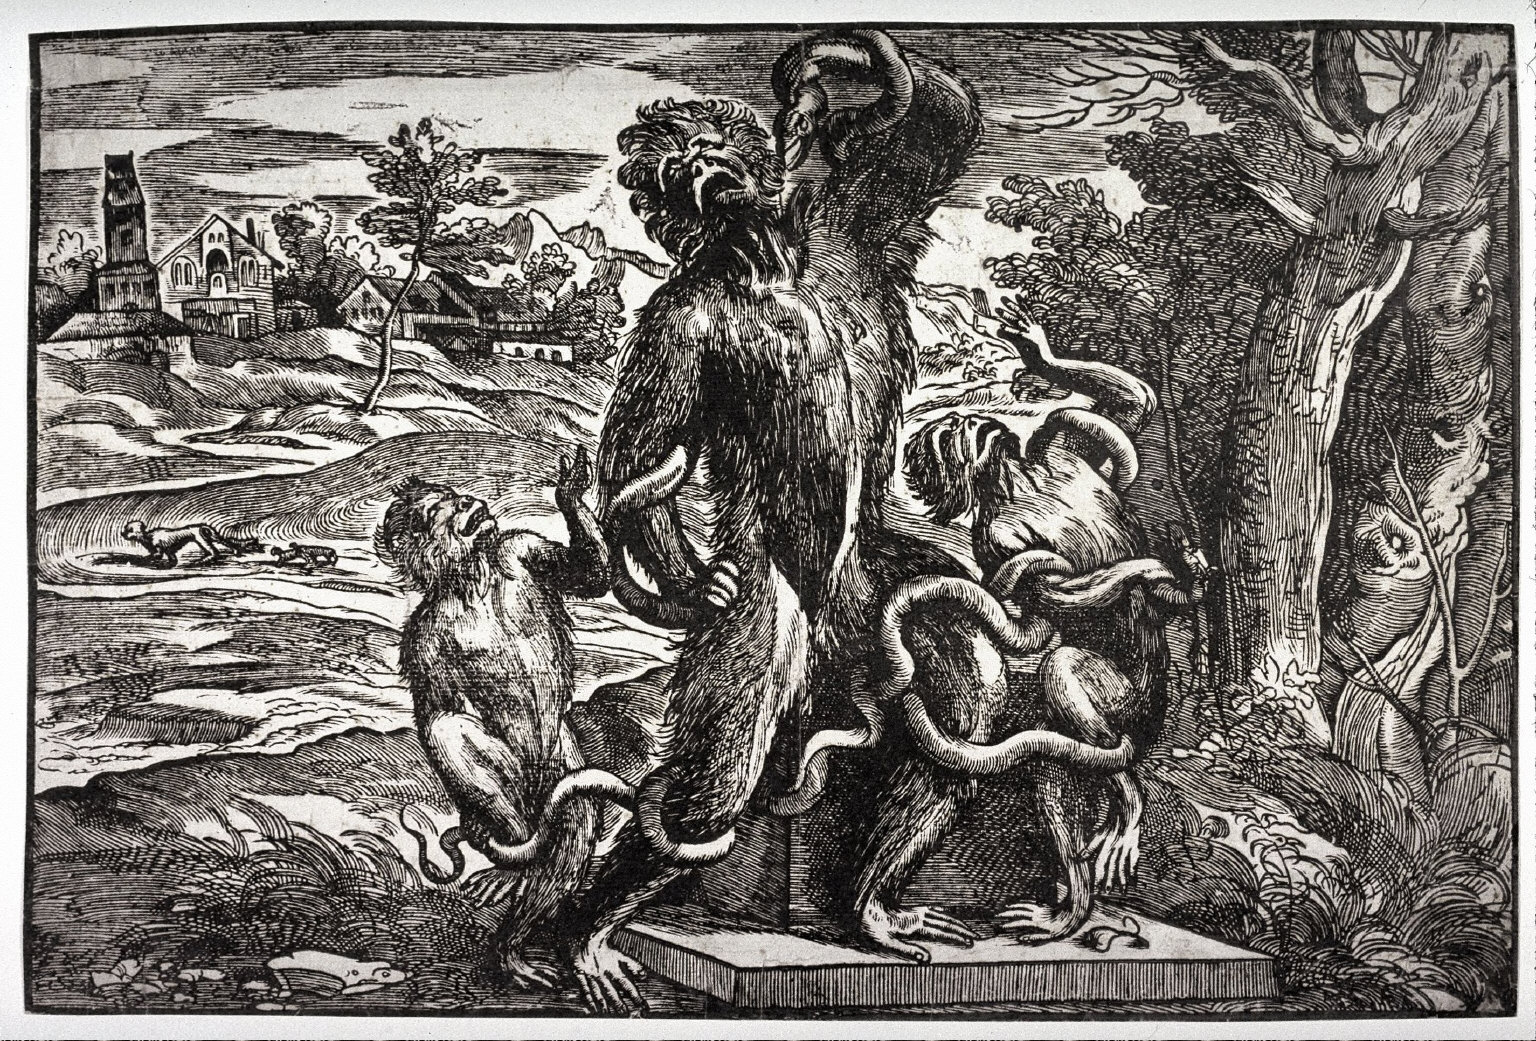 Caricature of the Laocoon, possibly after Titian